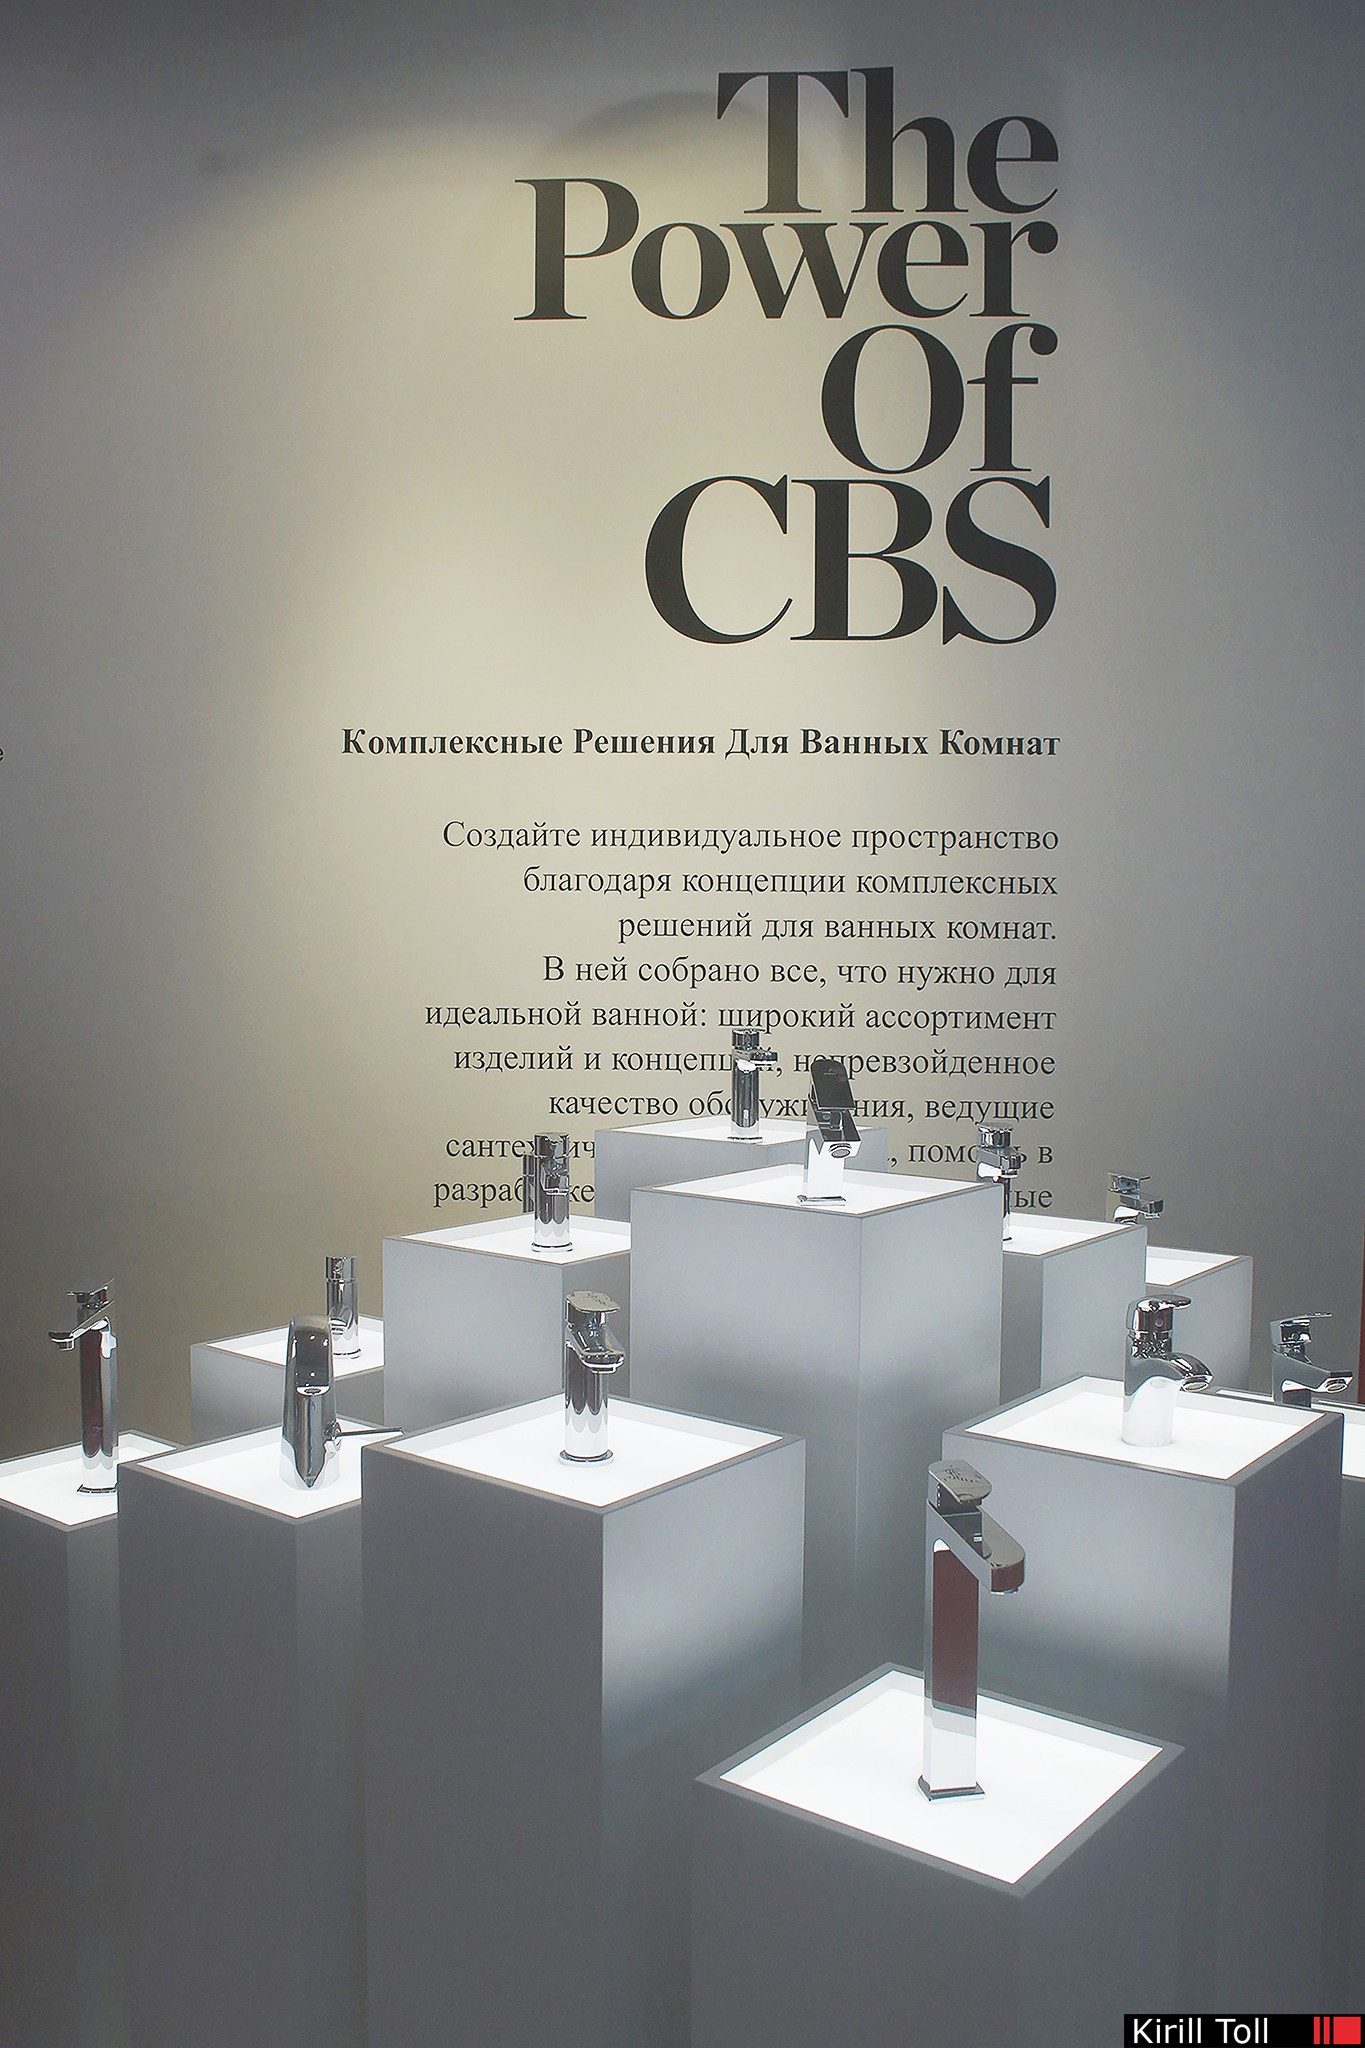 Professional photos of exhibition stands